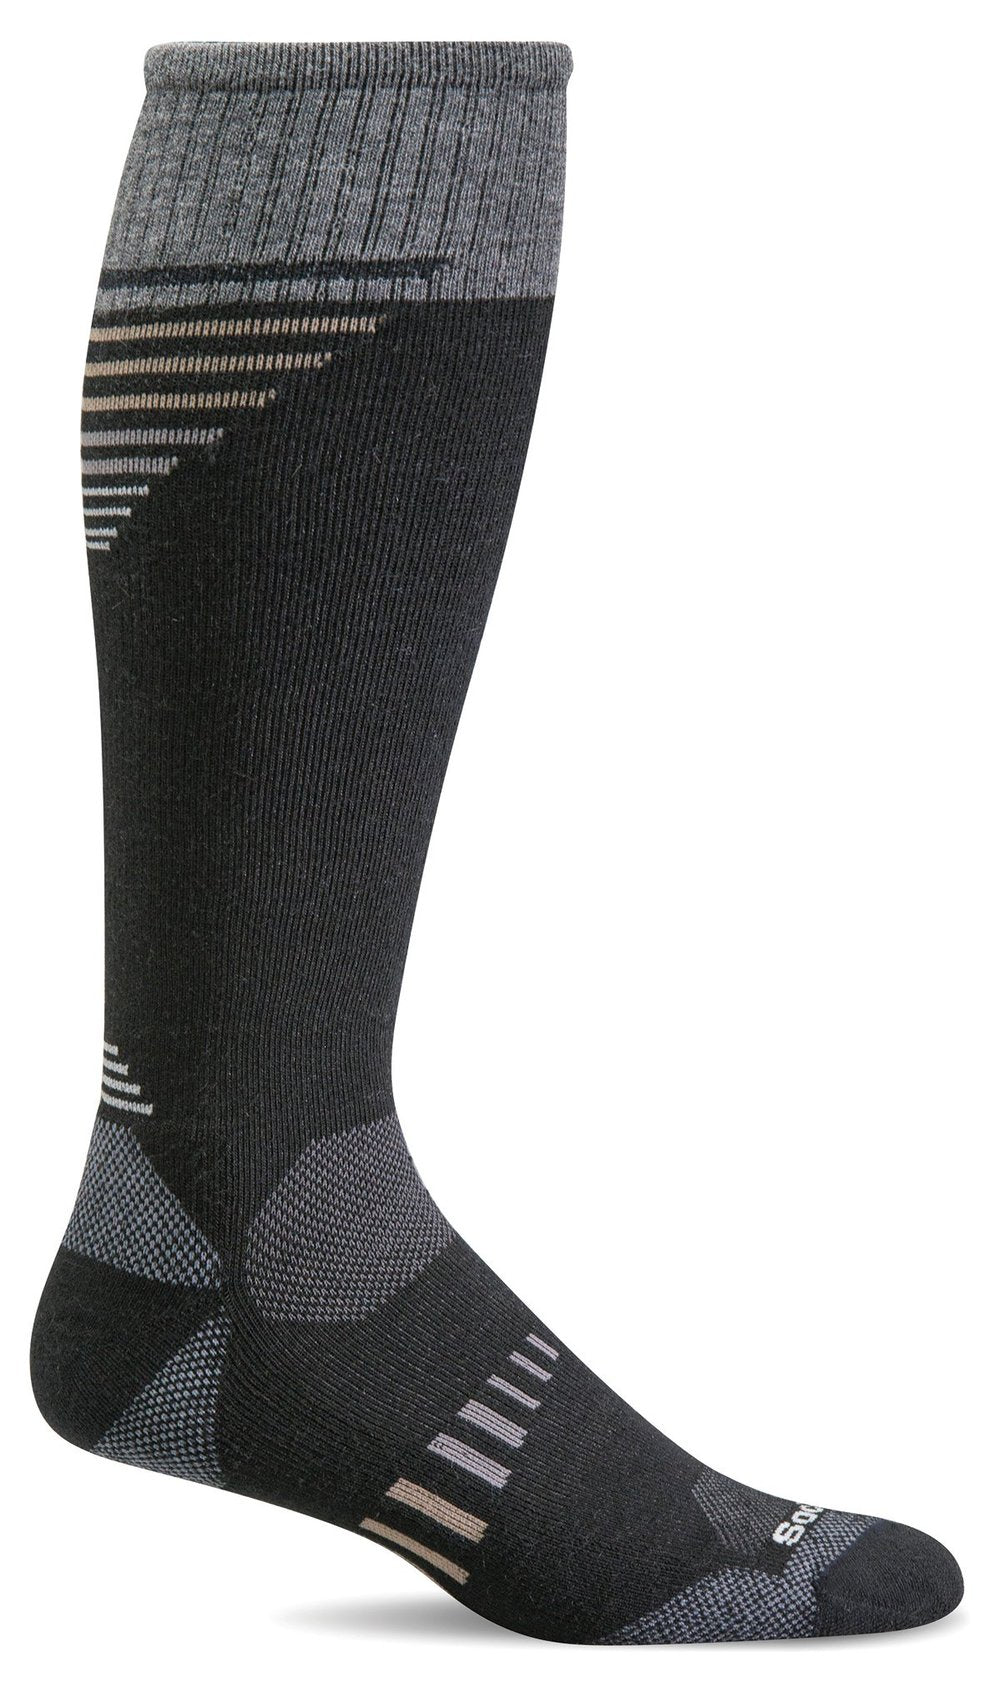 Ascend II OTC Knee-High - Black Moderate Compression (15-20mmHg)